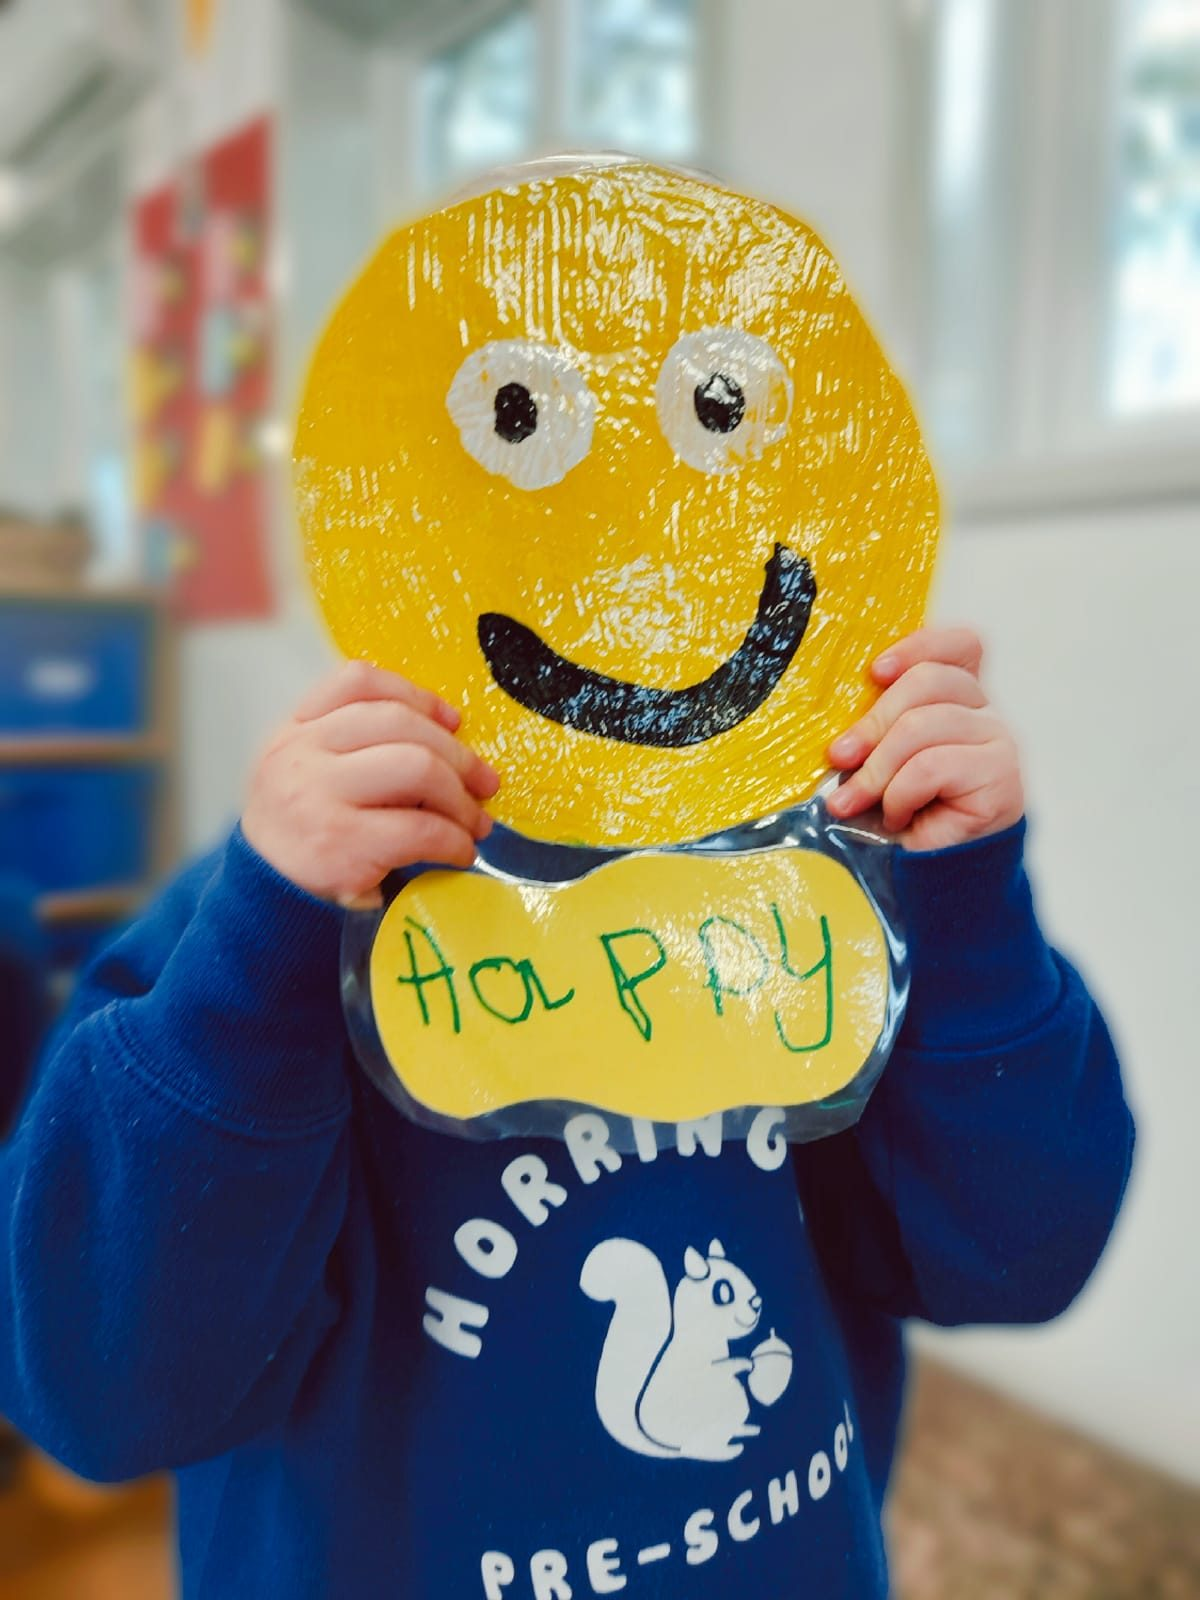 Covid 19 – Keeping children safe and happy